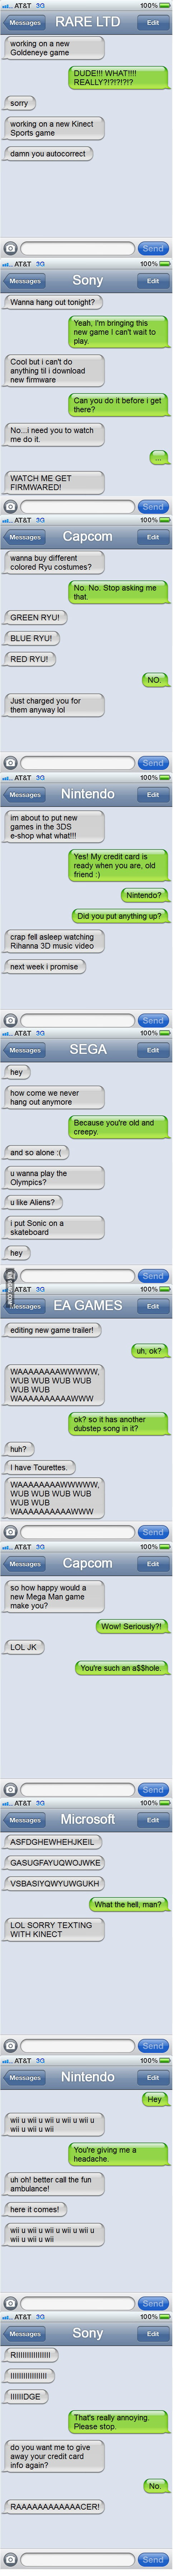 Video Game Companies as text mates